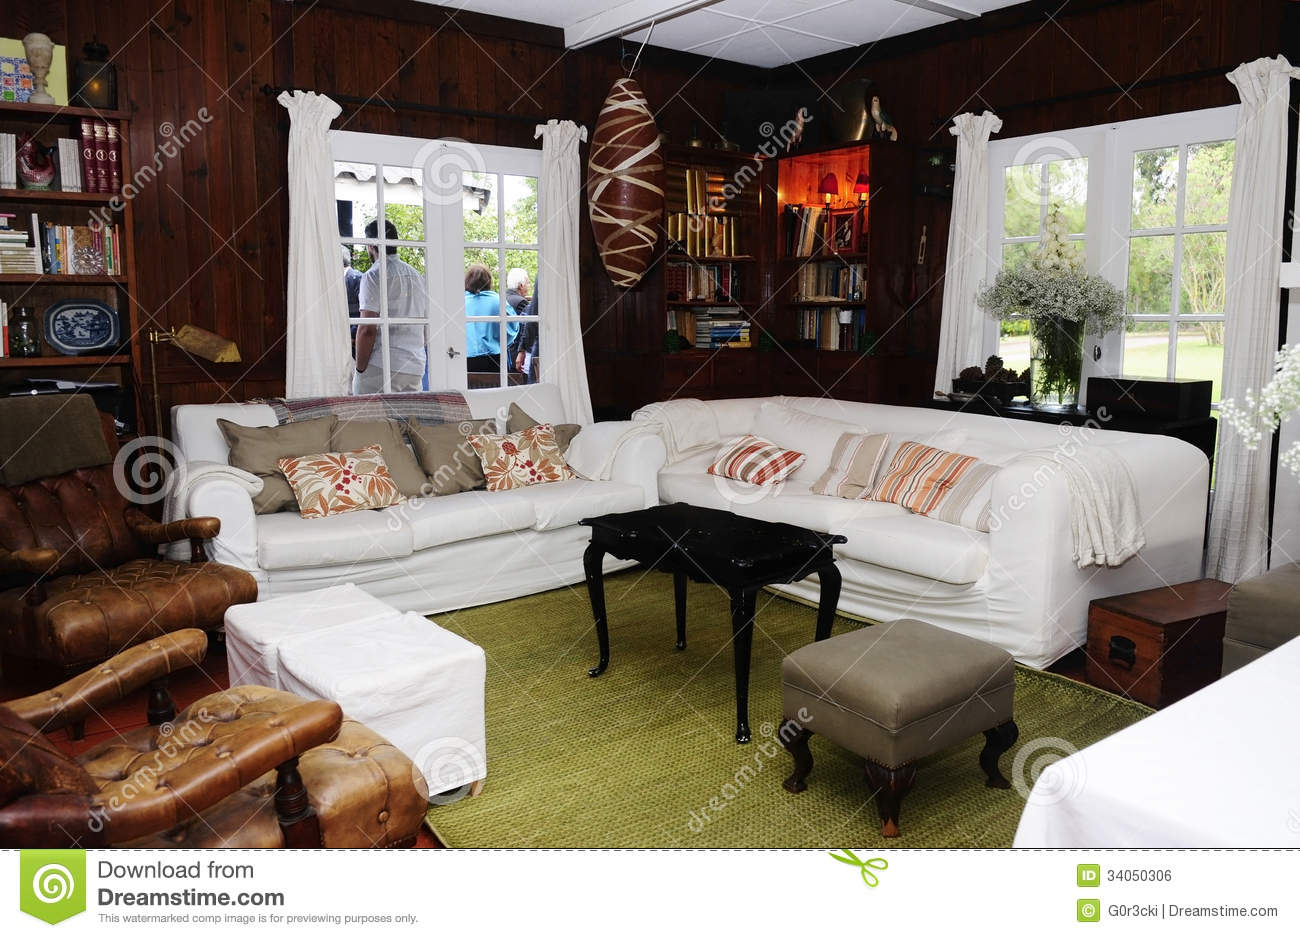 Cozy Cottage Room Home Interior Family And Friends